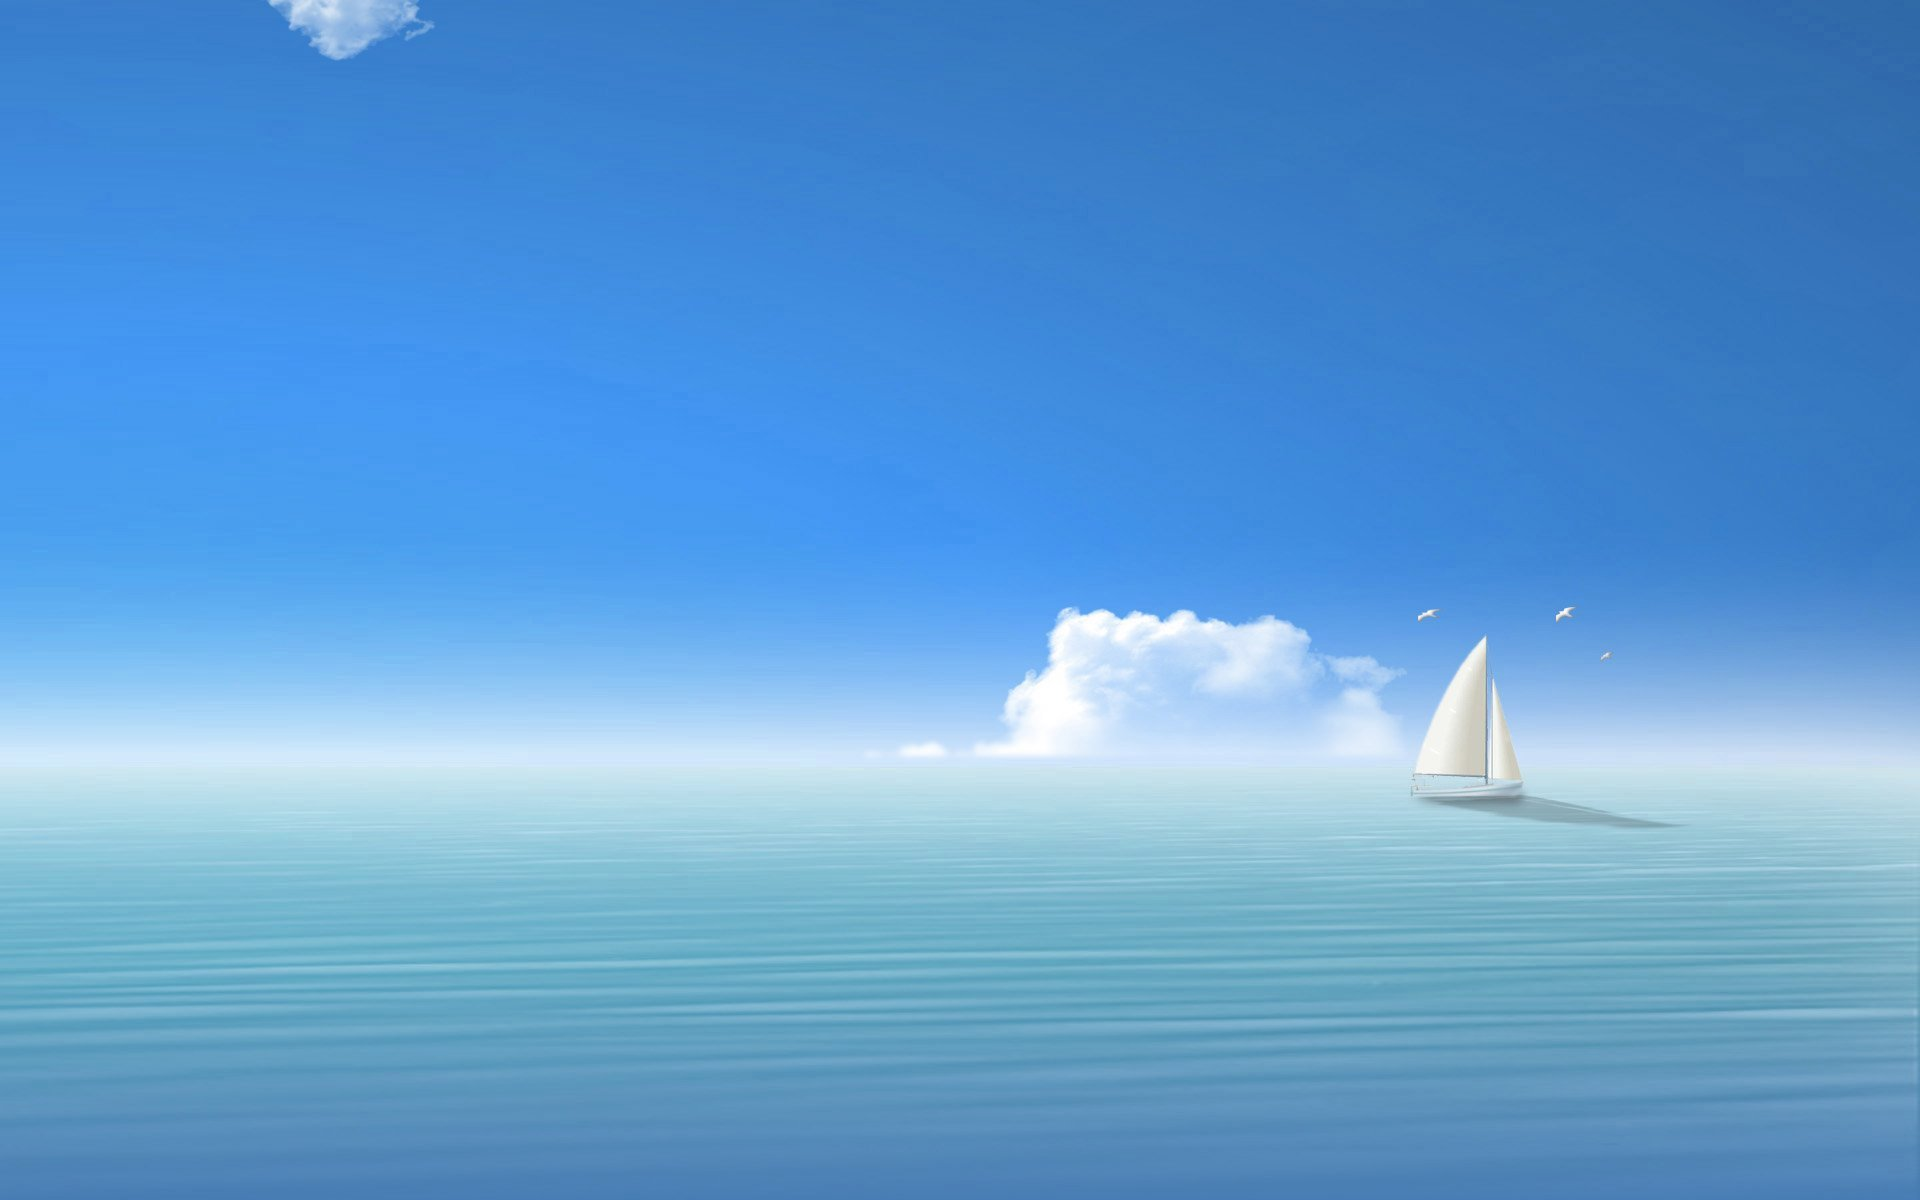 sea hd wallpaper hd wallpaperbackgroundshdimagessearch wallpaper 1920x1200